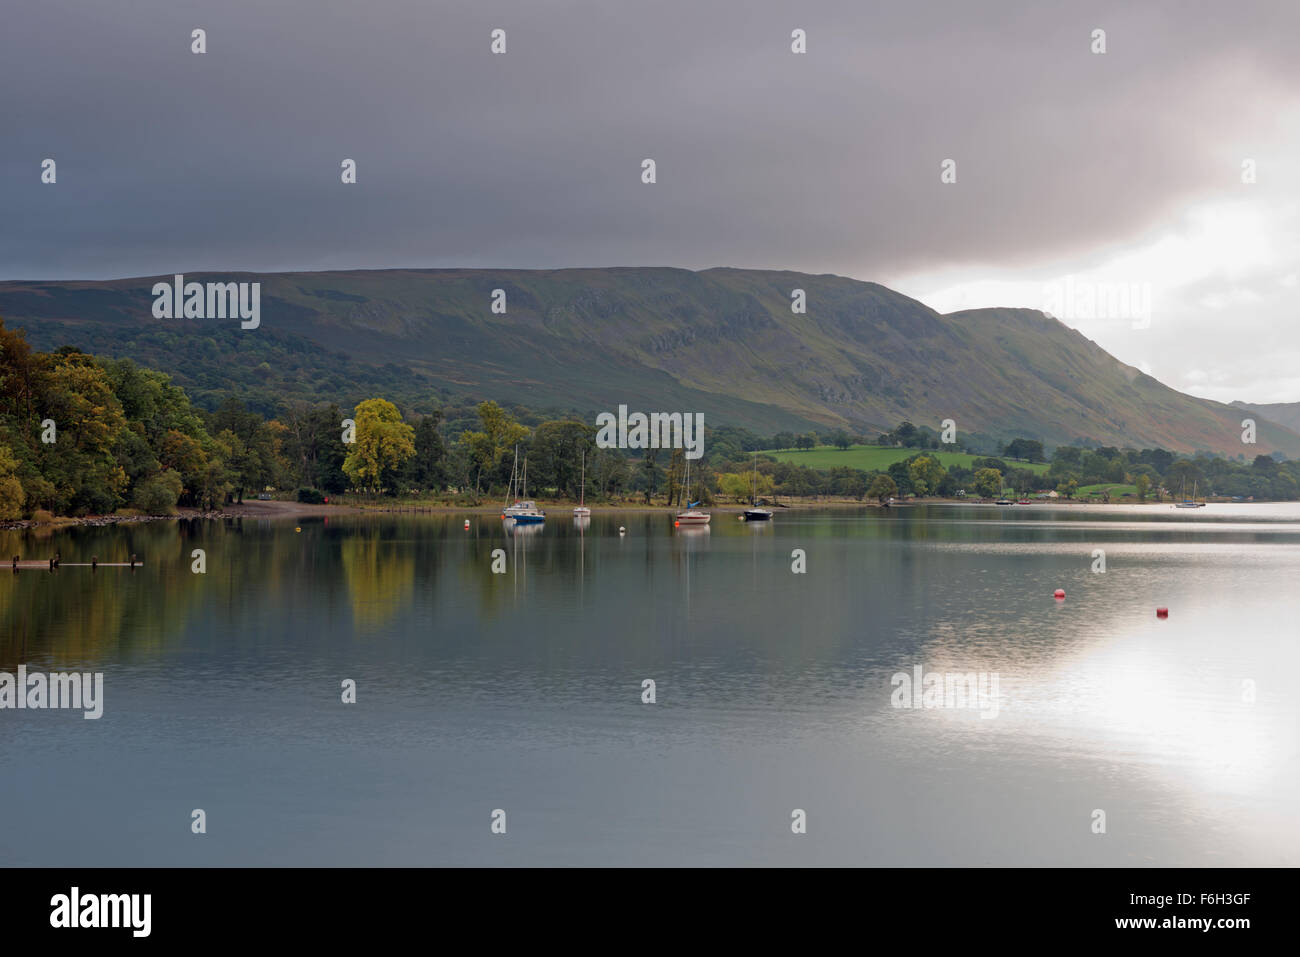 Views from  Pooley Bridge Pier of boats on Ullswater Lake District National Park, Cumbria, England, Uk, Gb. - Stock Image